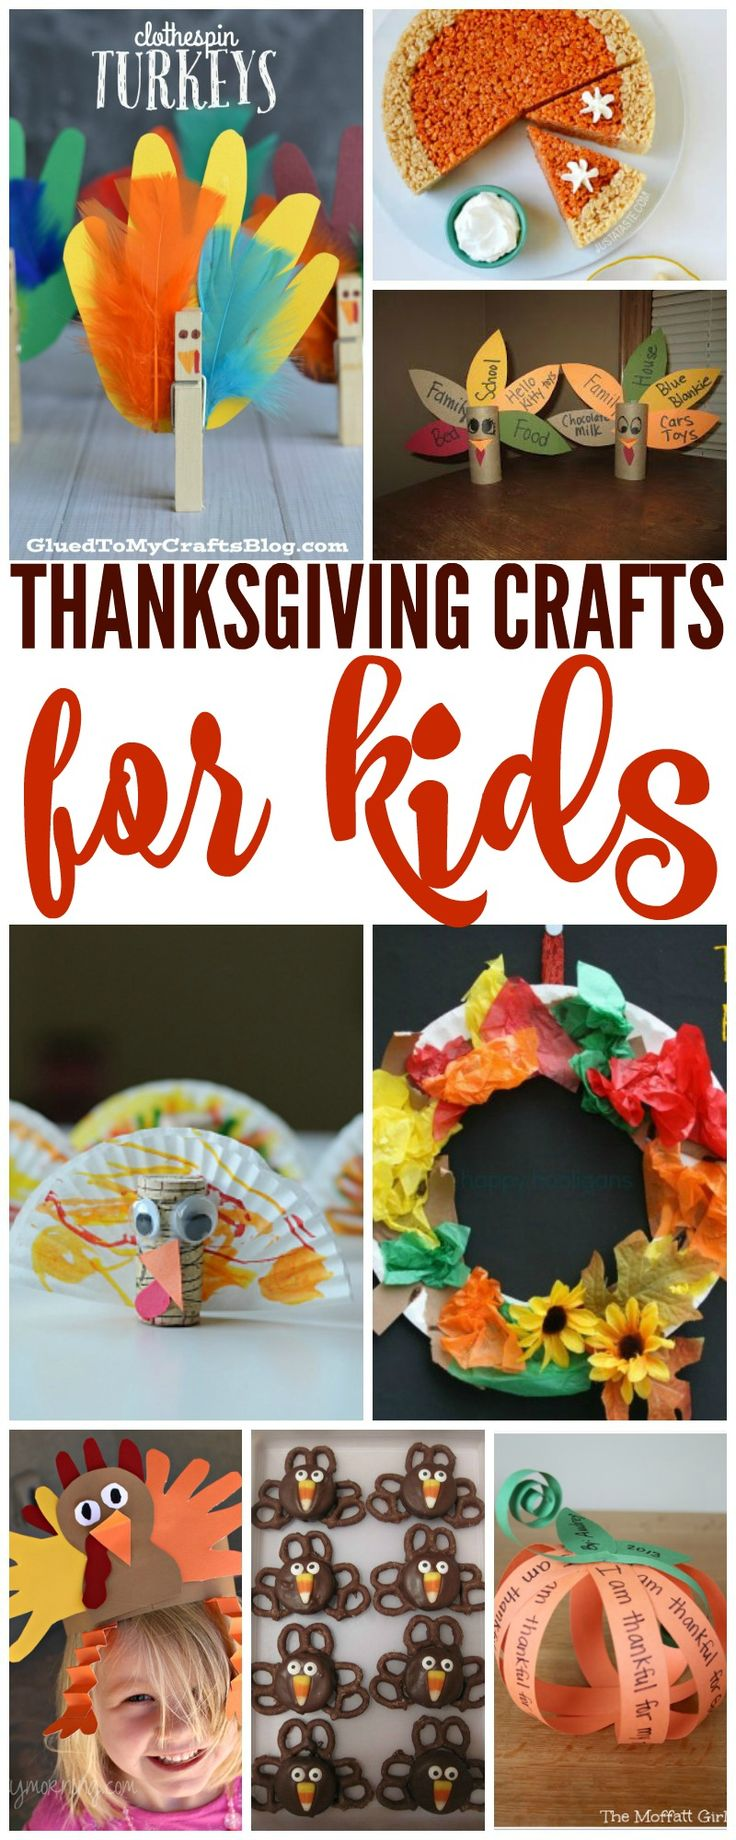 If you are looking for Awesome and Easy Thanksgiving Crafts for Kids, here are some great ideas to help your kids express their thankfulness! via @Passion4Savings                                                                                                                                                                                 More